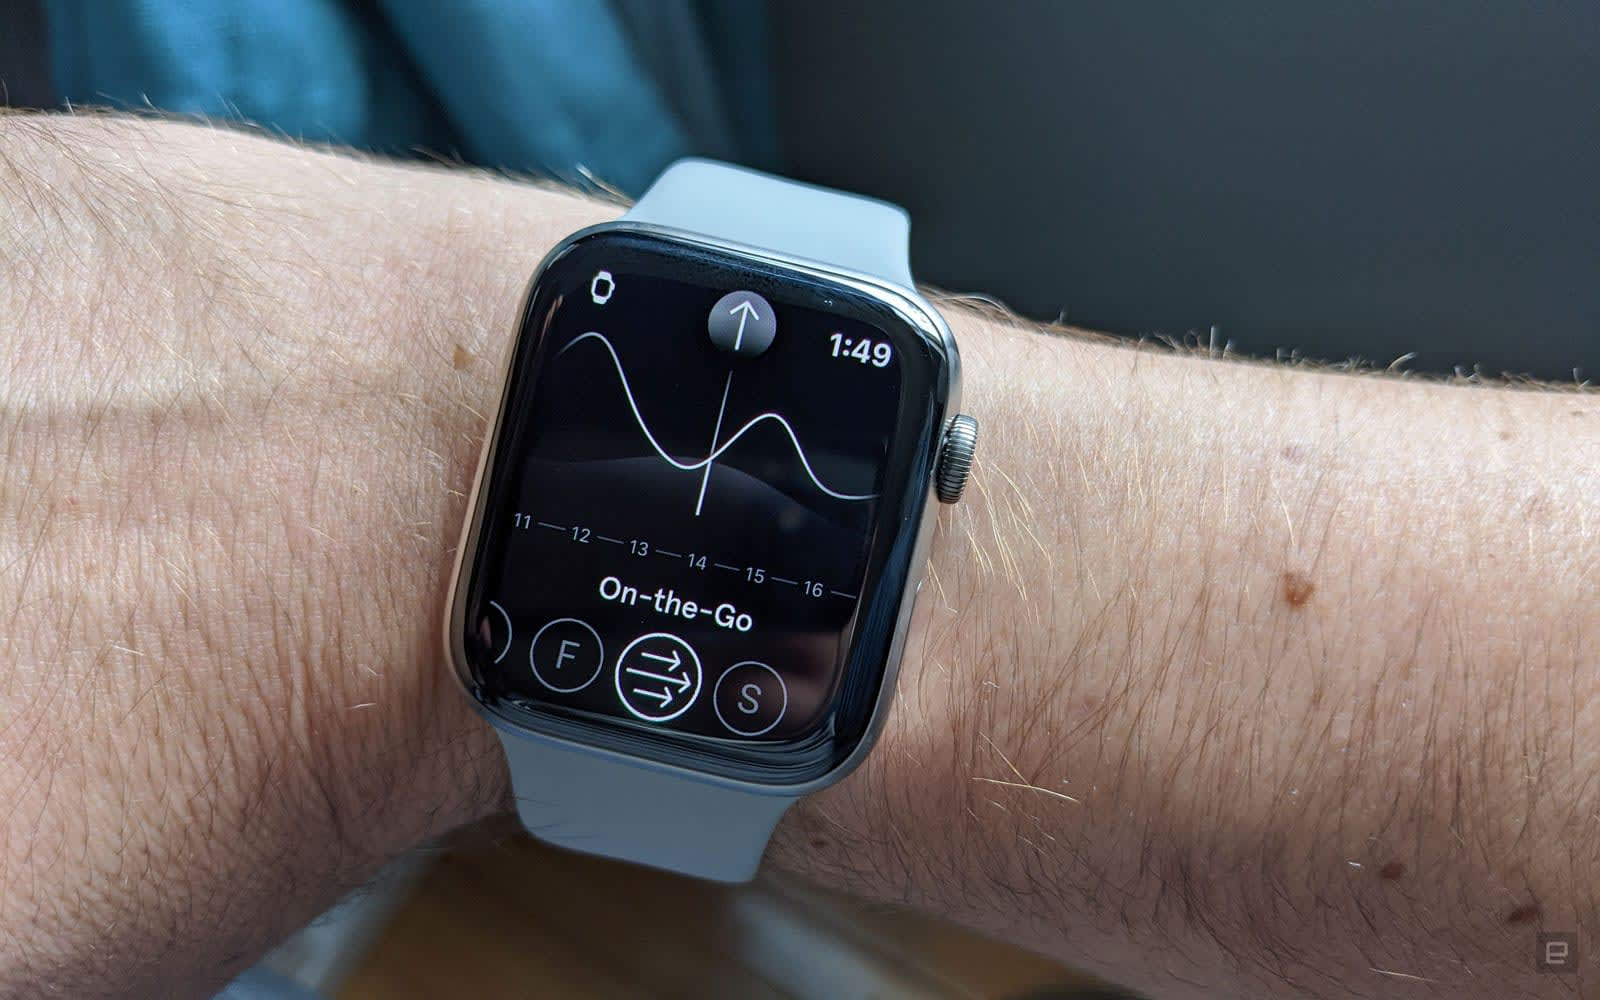 Endel's Apple Watch app generates soothing sounds on your wrist